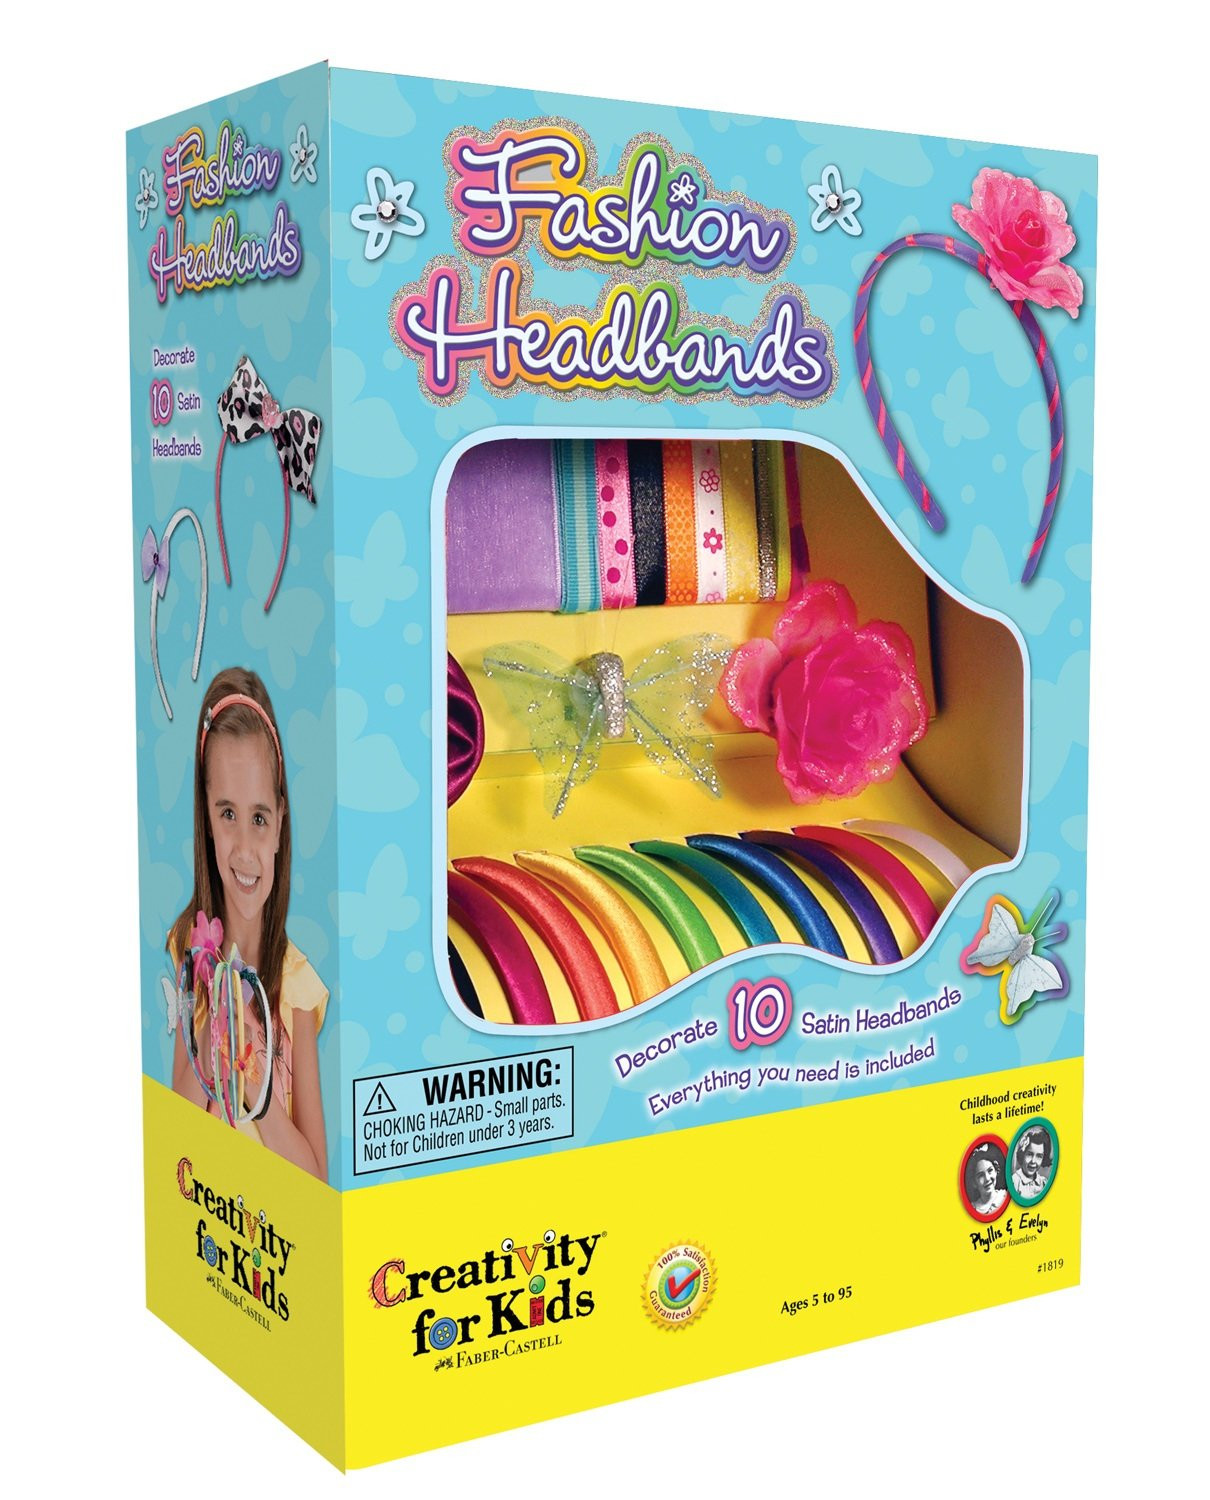 Cool Toys For Ages 10 And Up : Best gifts for year old girls in itsy bitsy fun